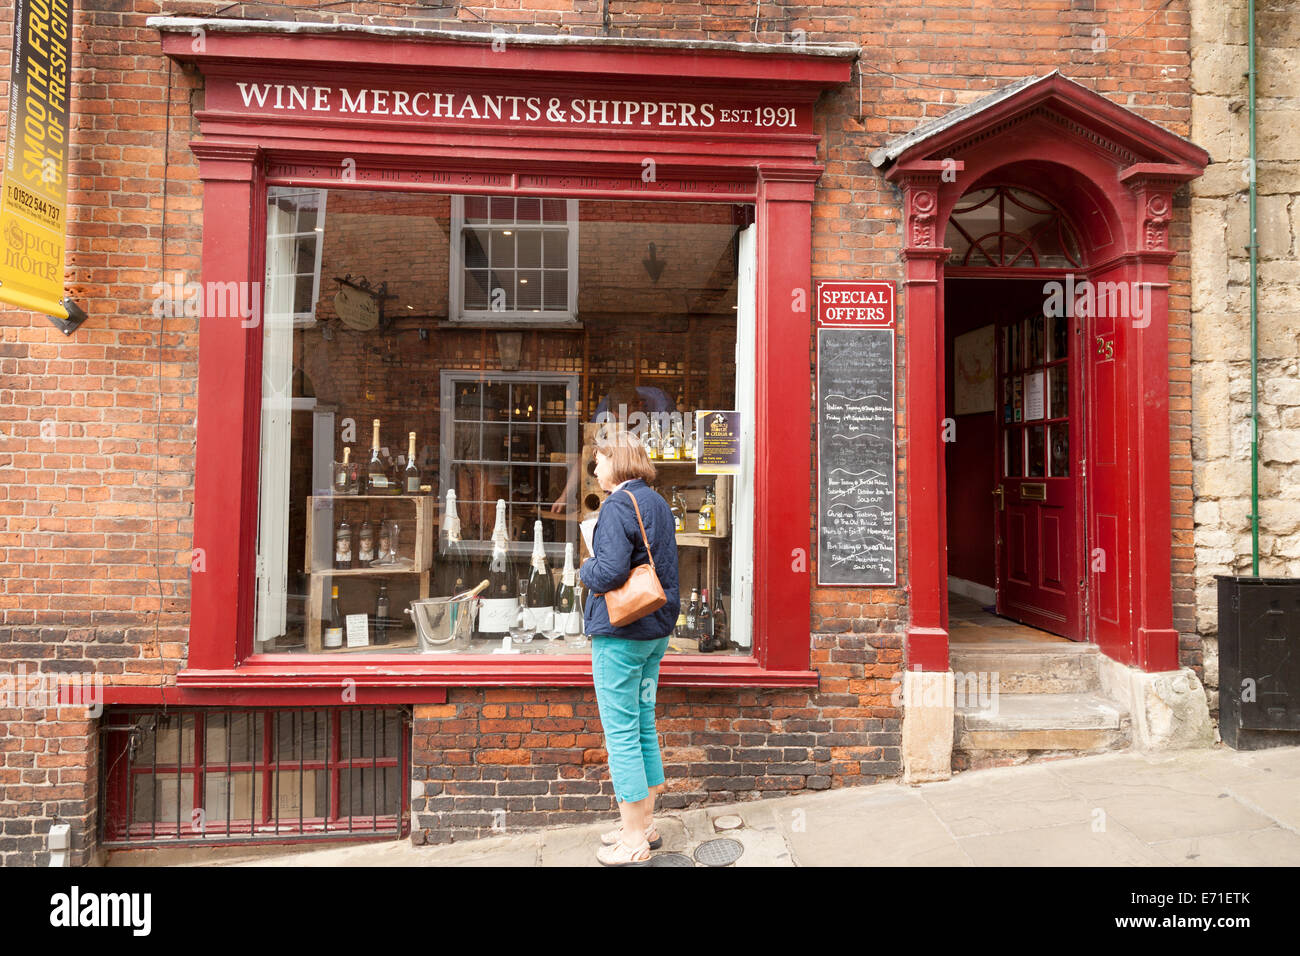 A wine merchants shop, Steep Hill, Lincoln UK - Stock Image